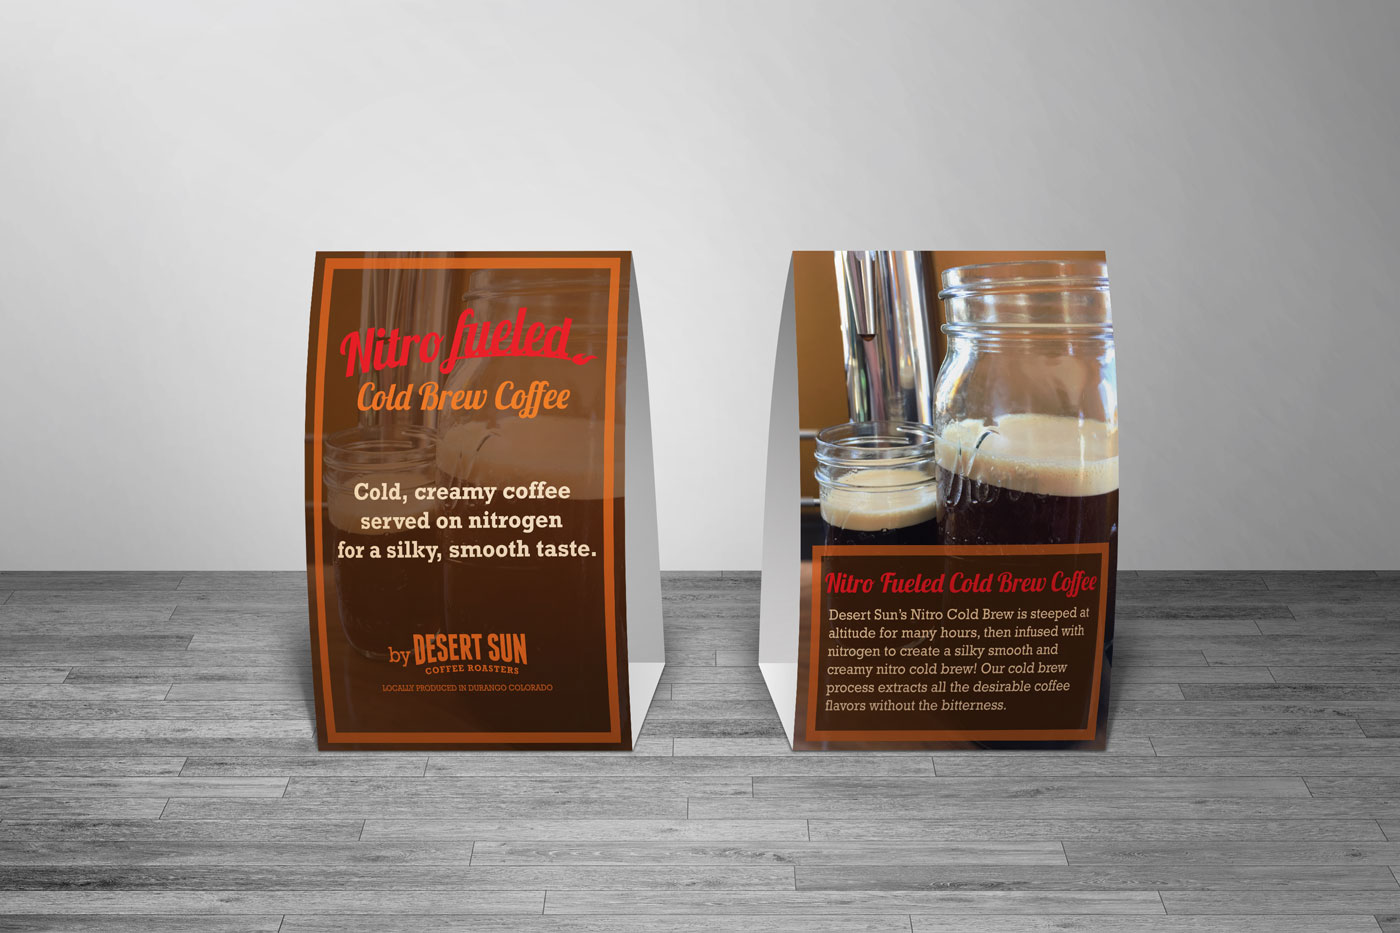 Table tent design for Nitro Cold Brew